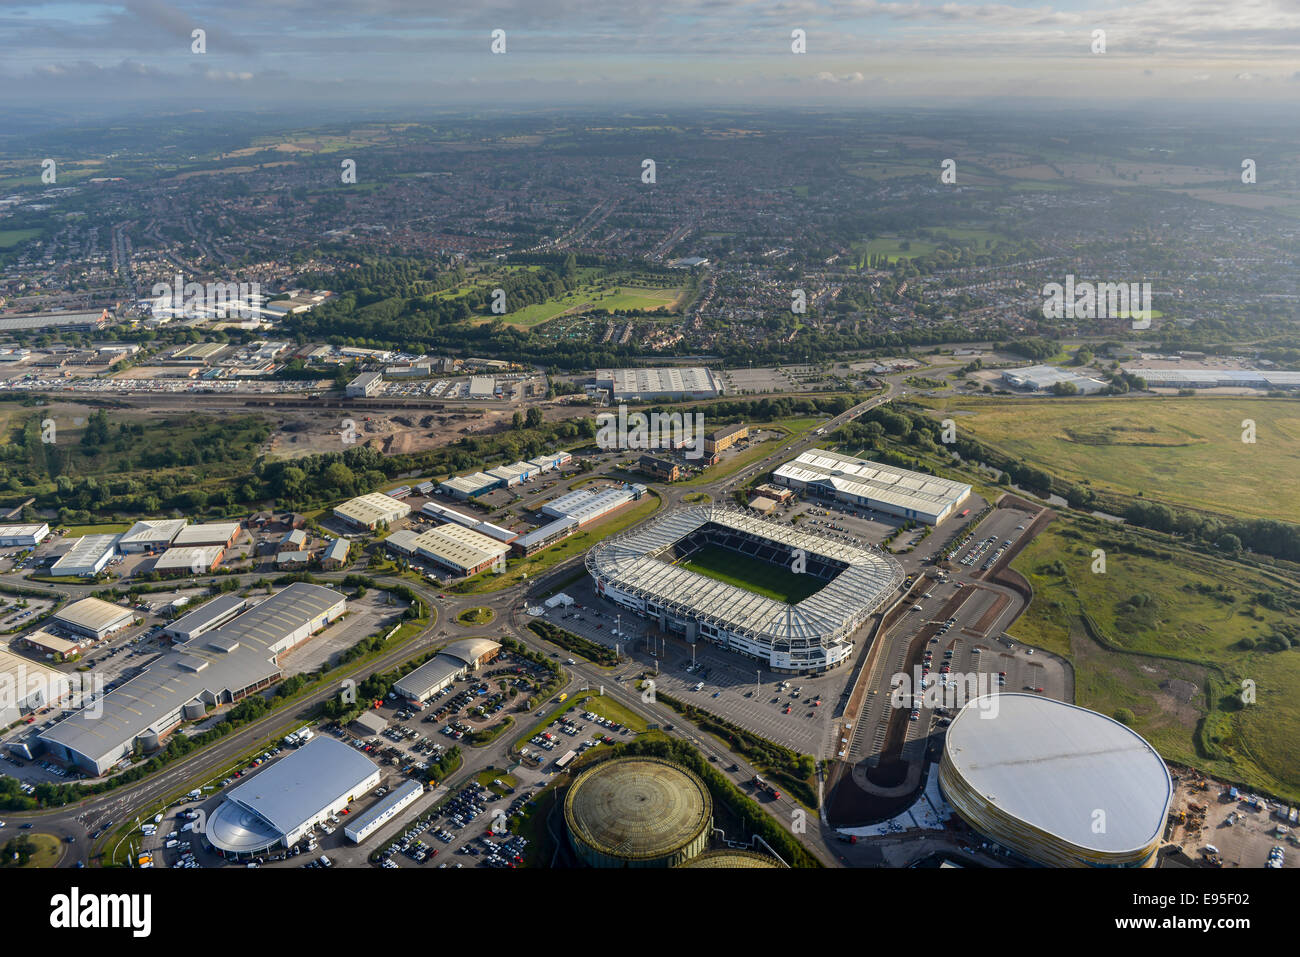 An aerial view looking over the East Midlands city of Derby with the Ipro Stadium in the foreground - Stock Image